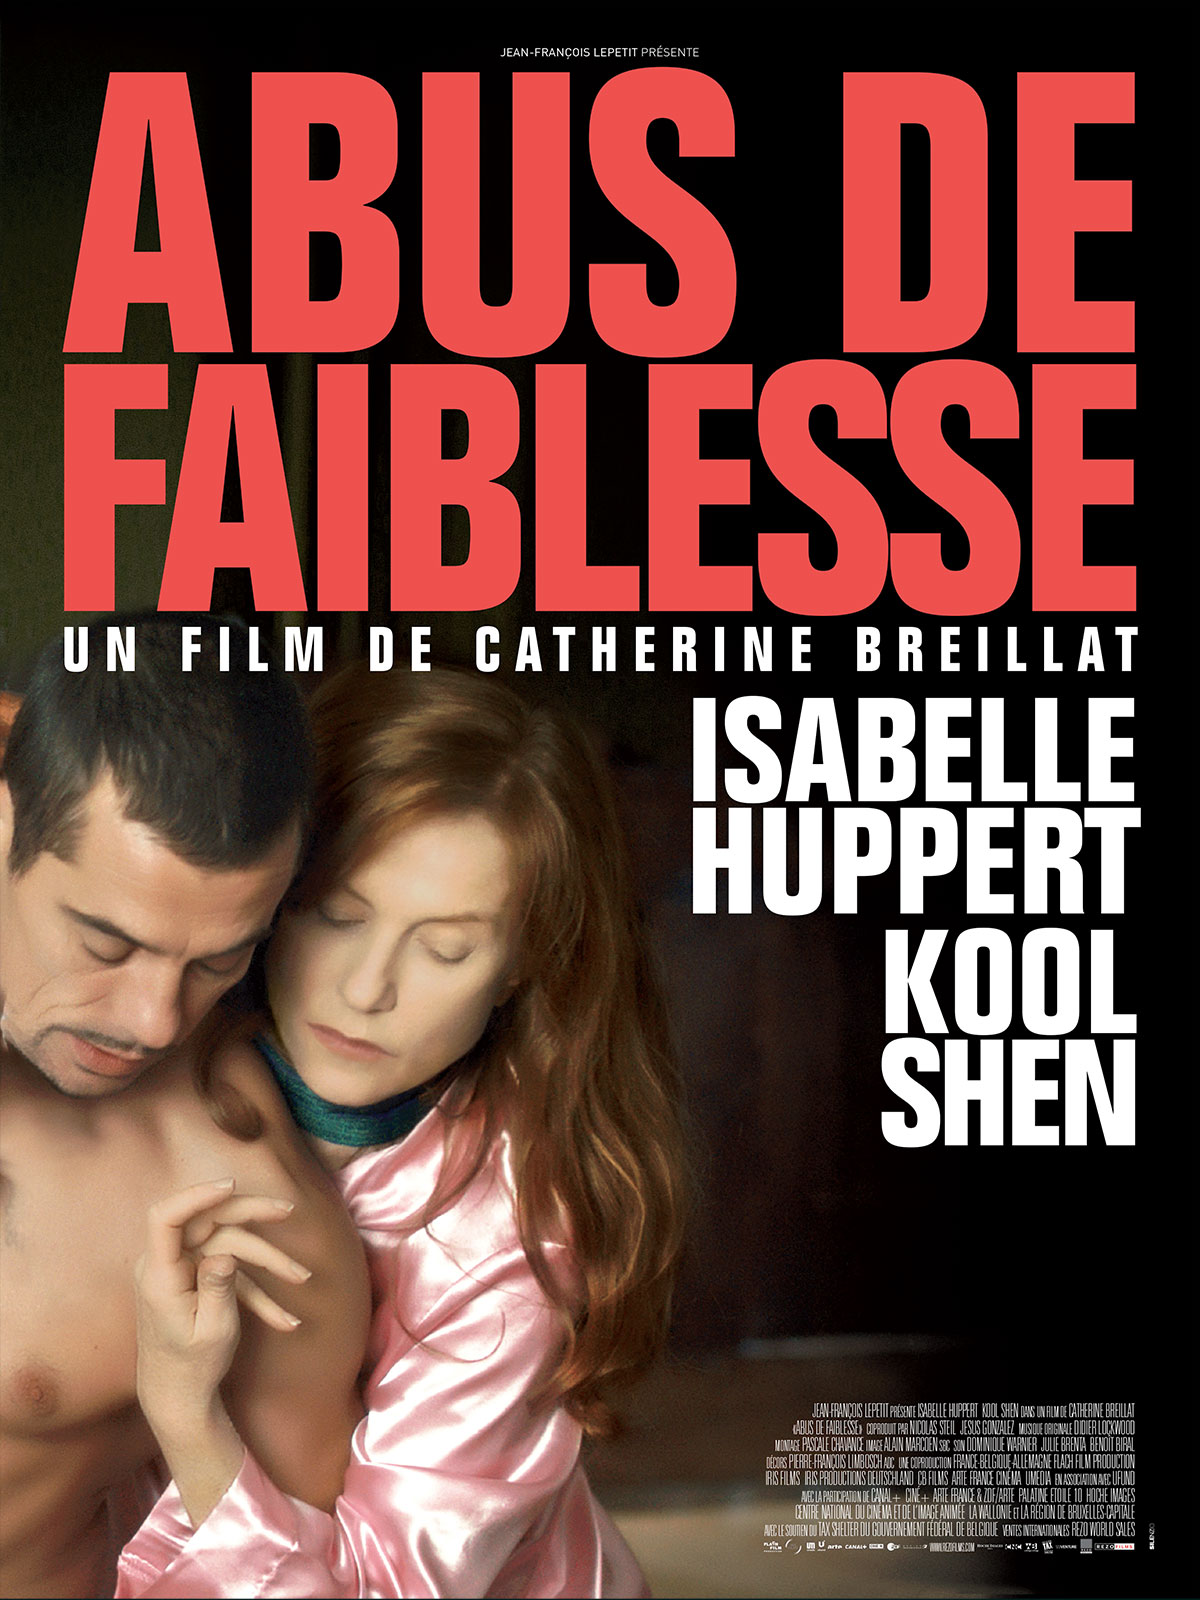 Télécharger Abus de faiblesse en Dvdrip sur uptobox, uploaded, turbobit, bitfiles, bayfiles ou en torrent